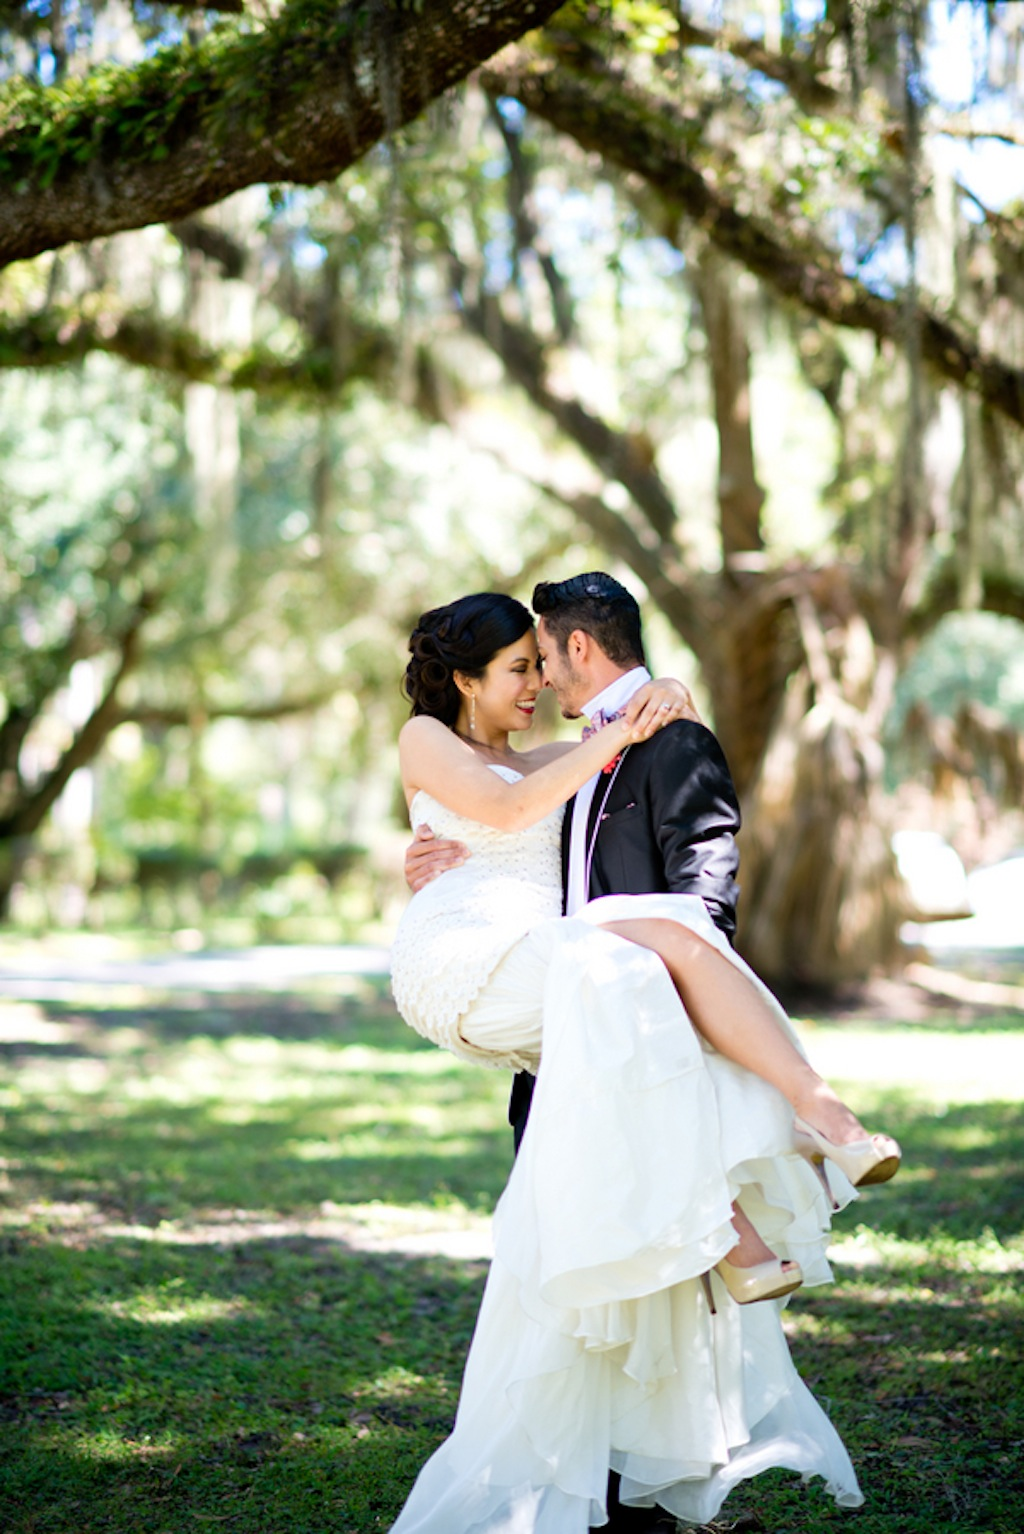 Groom Carrying Bride   Vintage, Garden Wedding Styled Shoot by Kera Photography